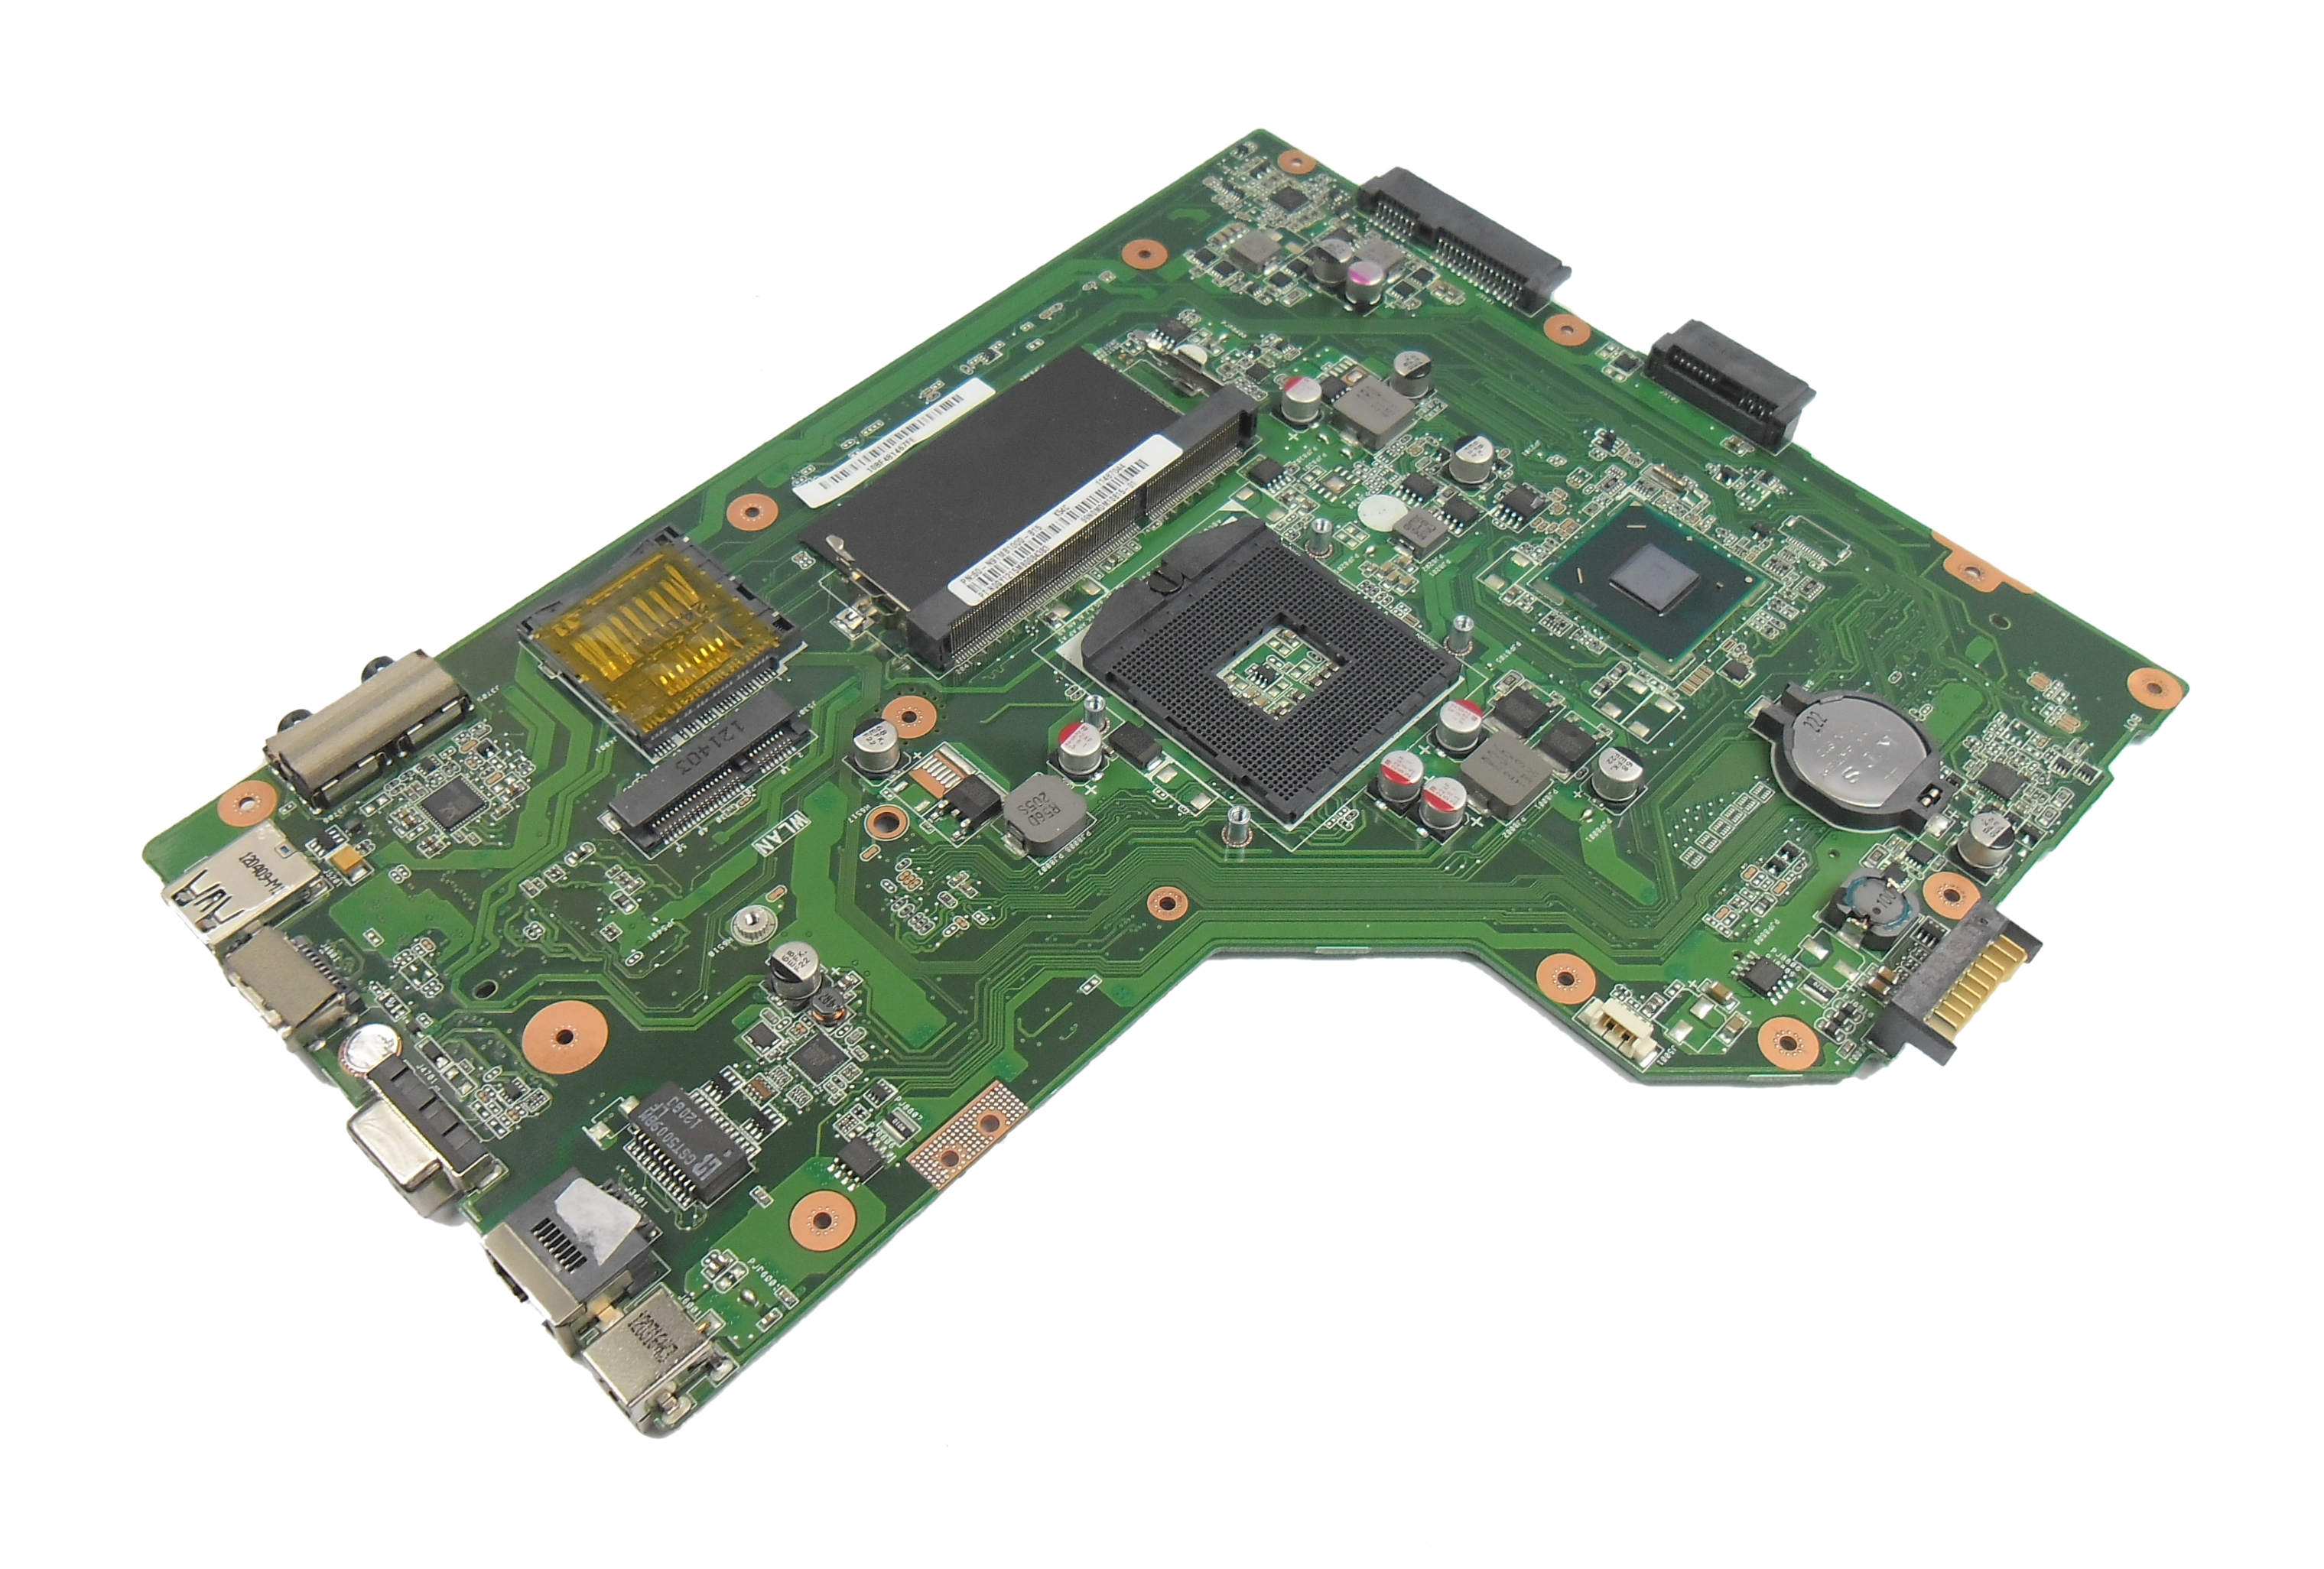 60-N9TMB1000-B15 Asus A54C (A54C-SX327S) Notebook Motherboard